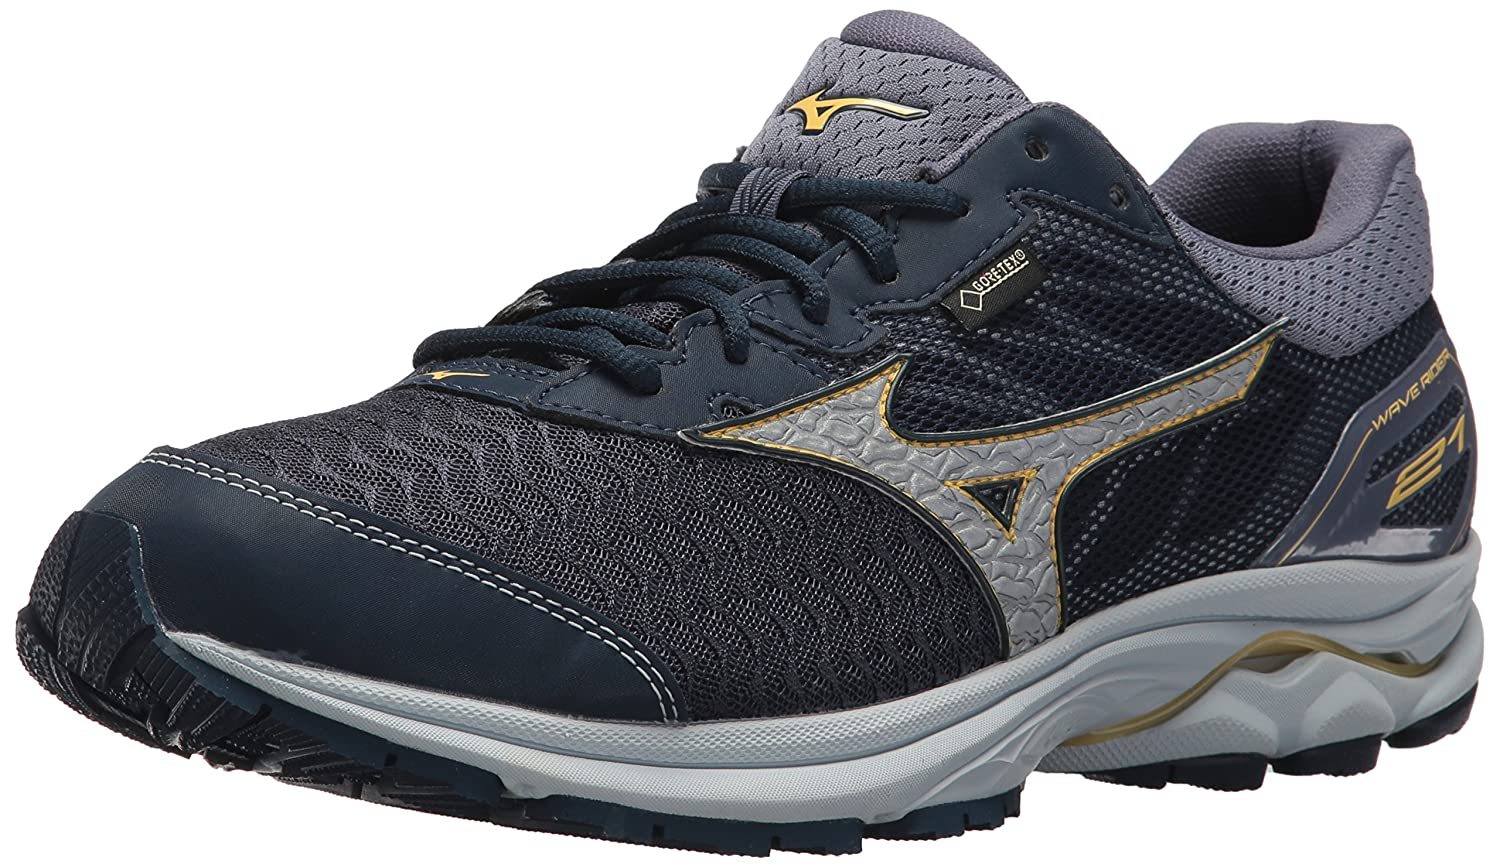 Mizuno Wave Rider 21 GTX Men's Running Shoes